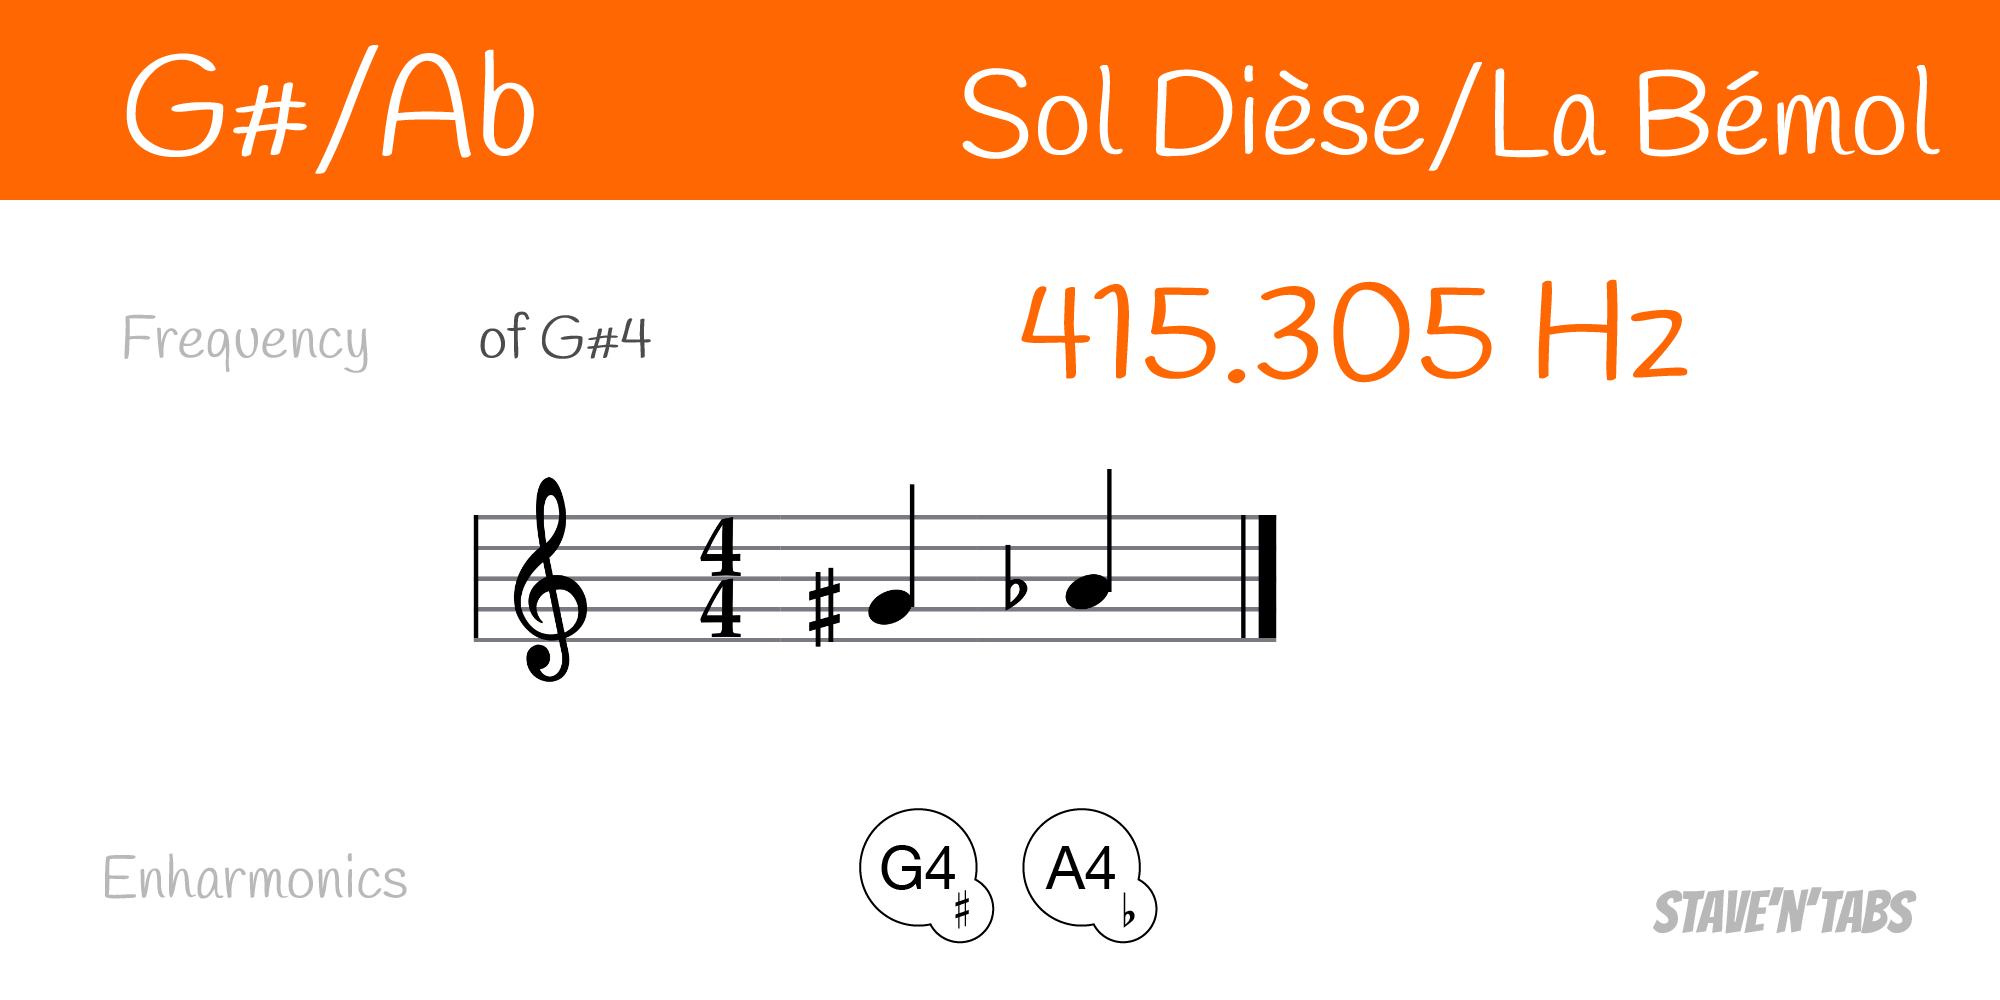 Enharmonic equivalents for the note G#